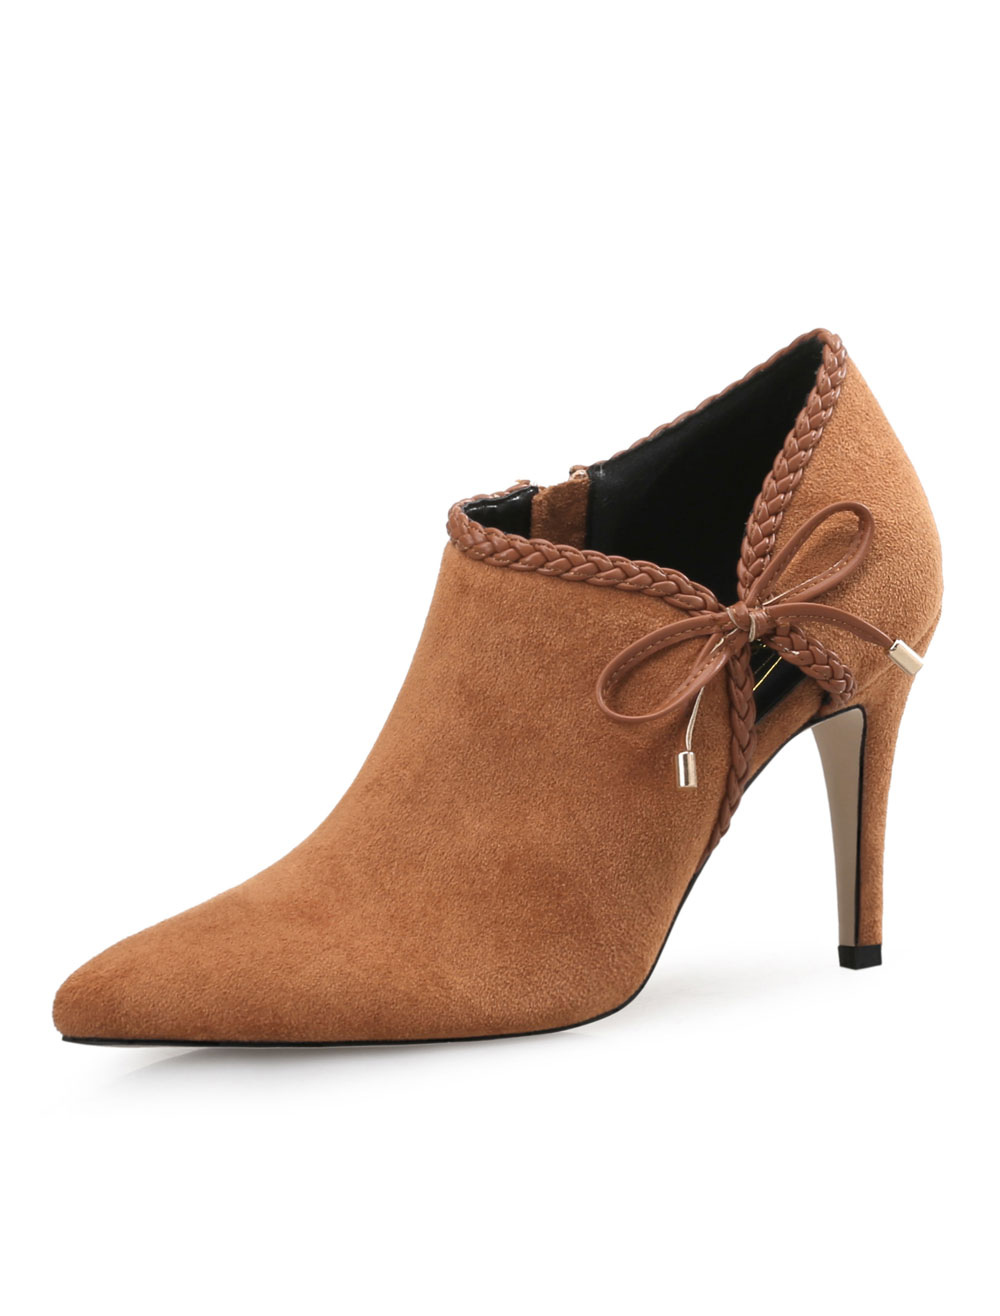 f94e7ed393 High Heel Booties Women Shoes Brown Pointed Toe Bow Short Booties ...